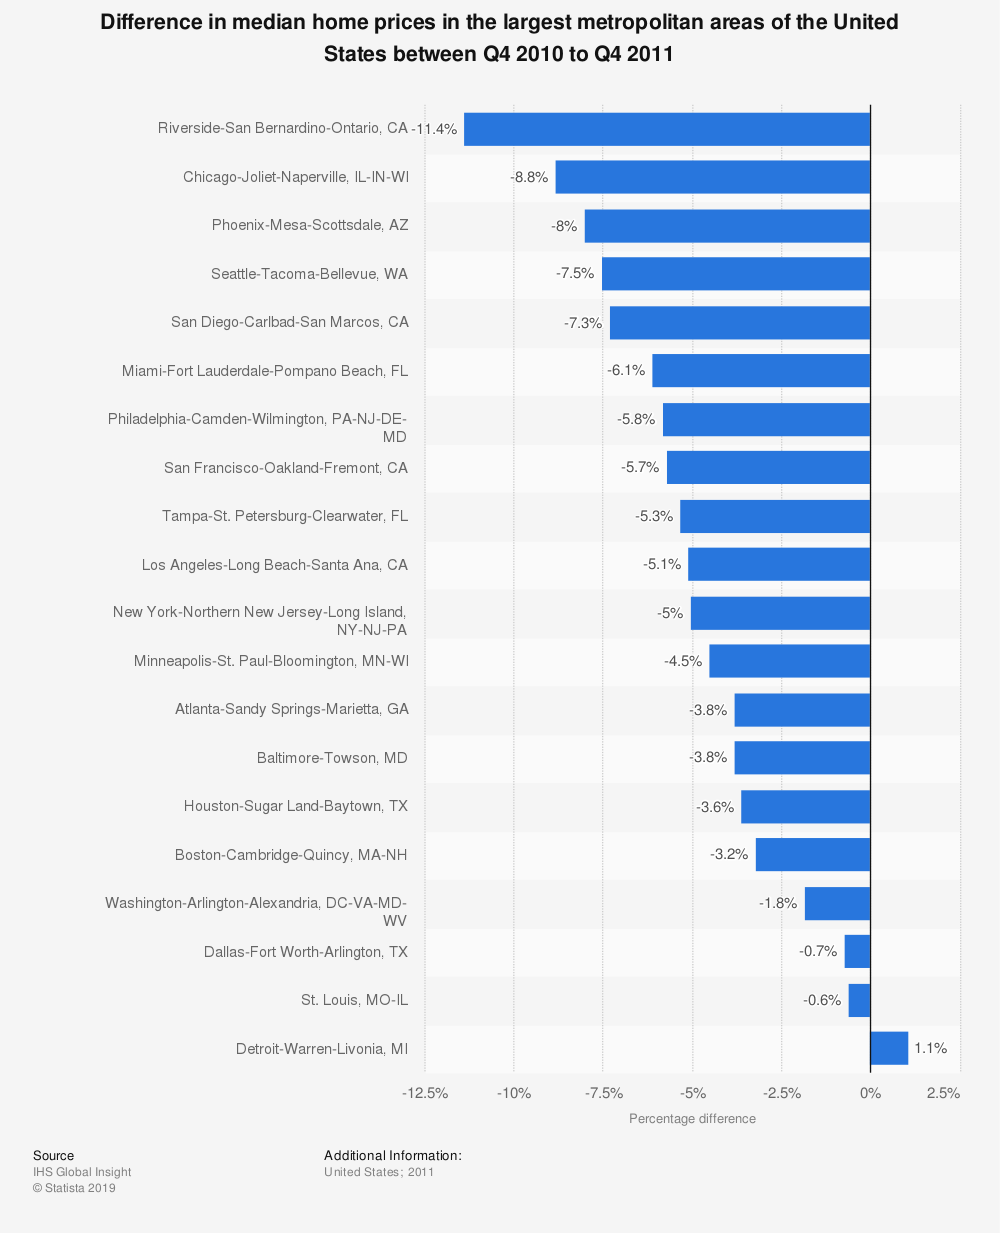 Statistic: Difference in median home prices in the largest metropolitan areas of the United States between Q4 2010 to Q4 2011 | Statista